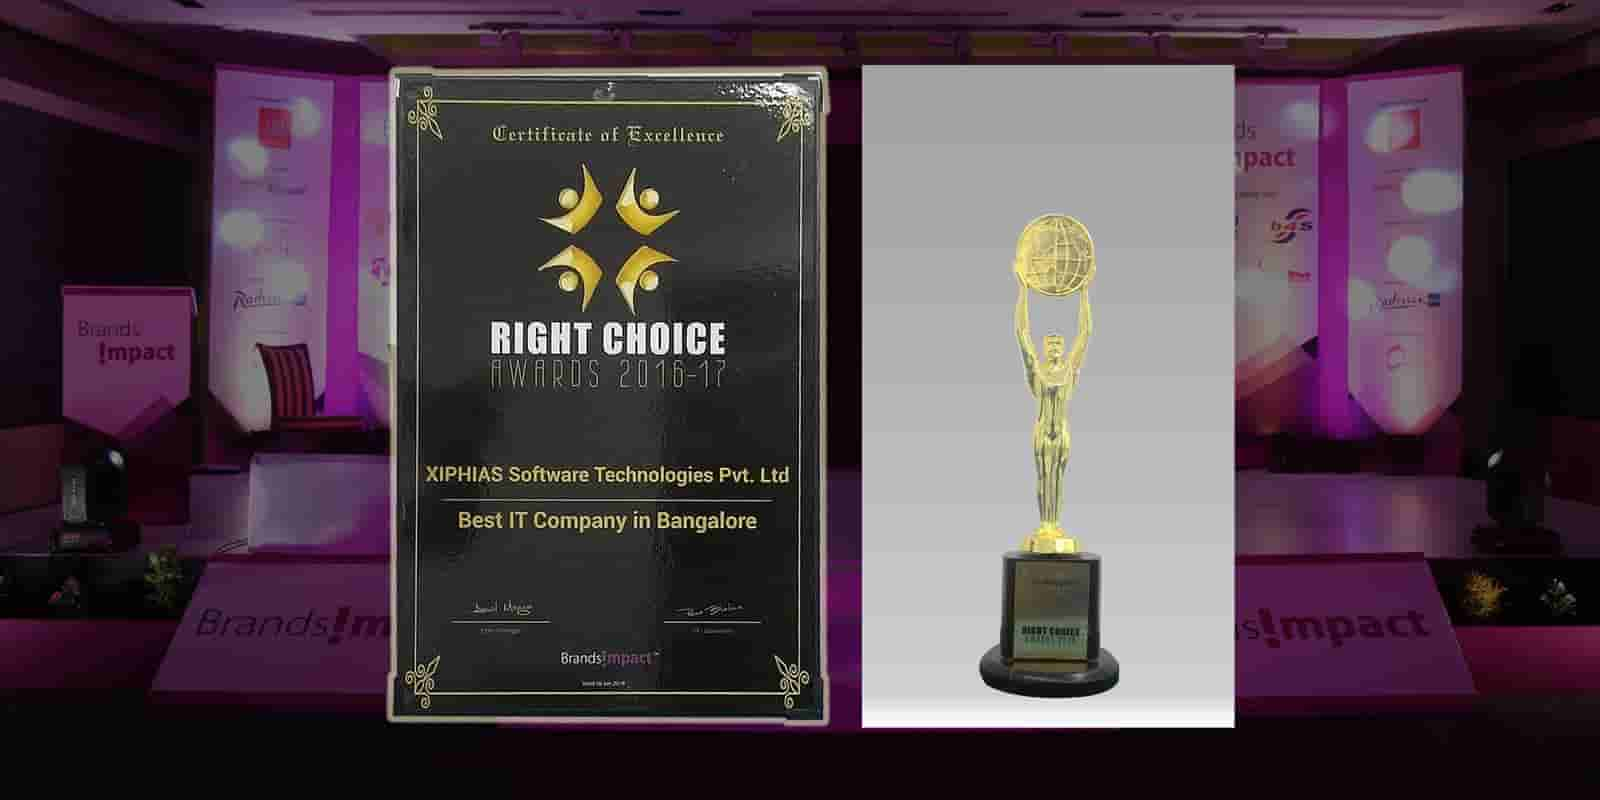 Right Choice Awards for Best IT Company in Bangalore